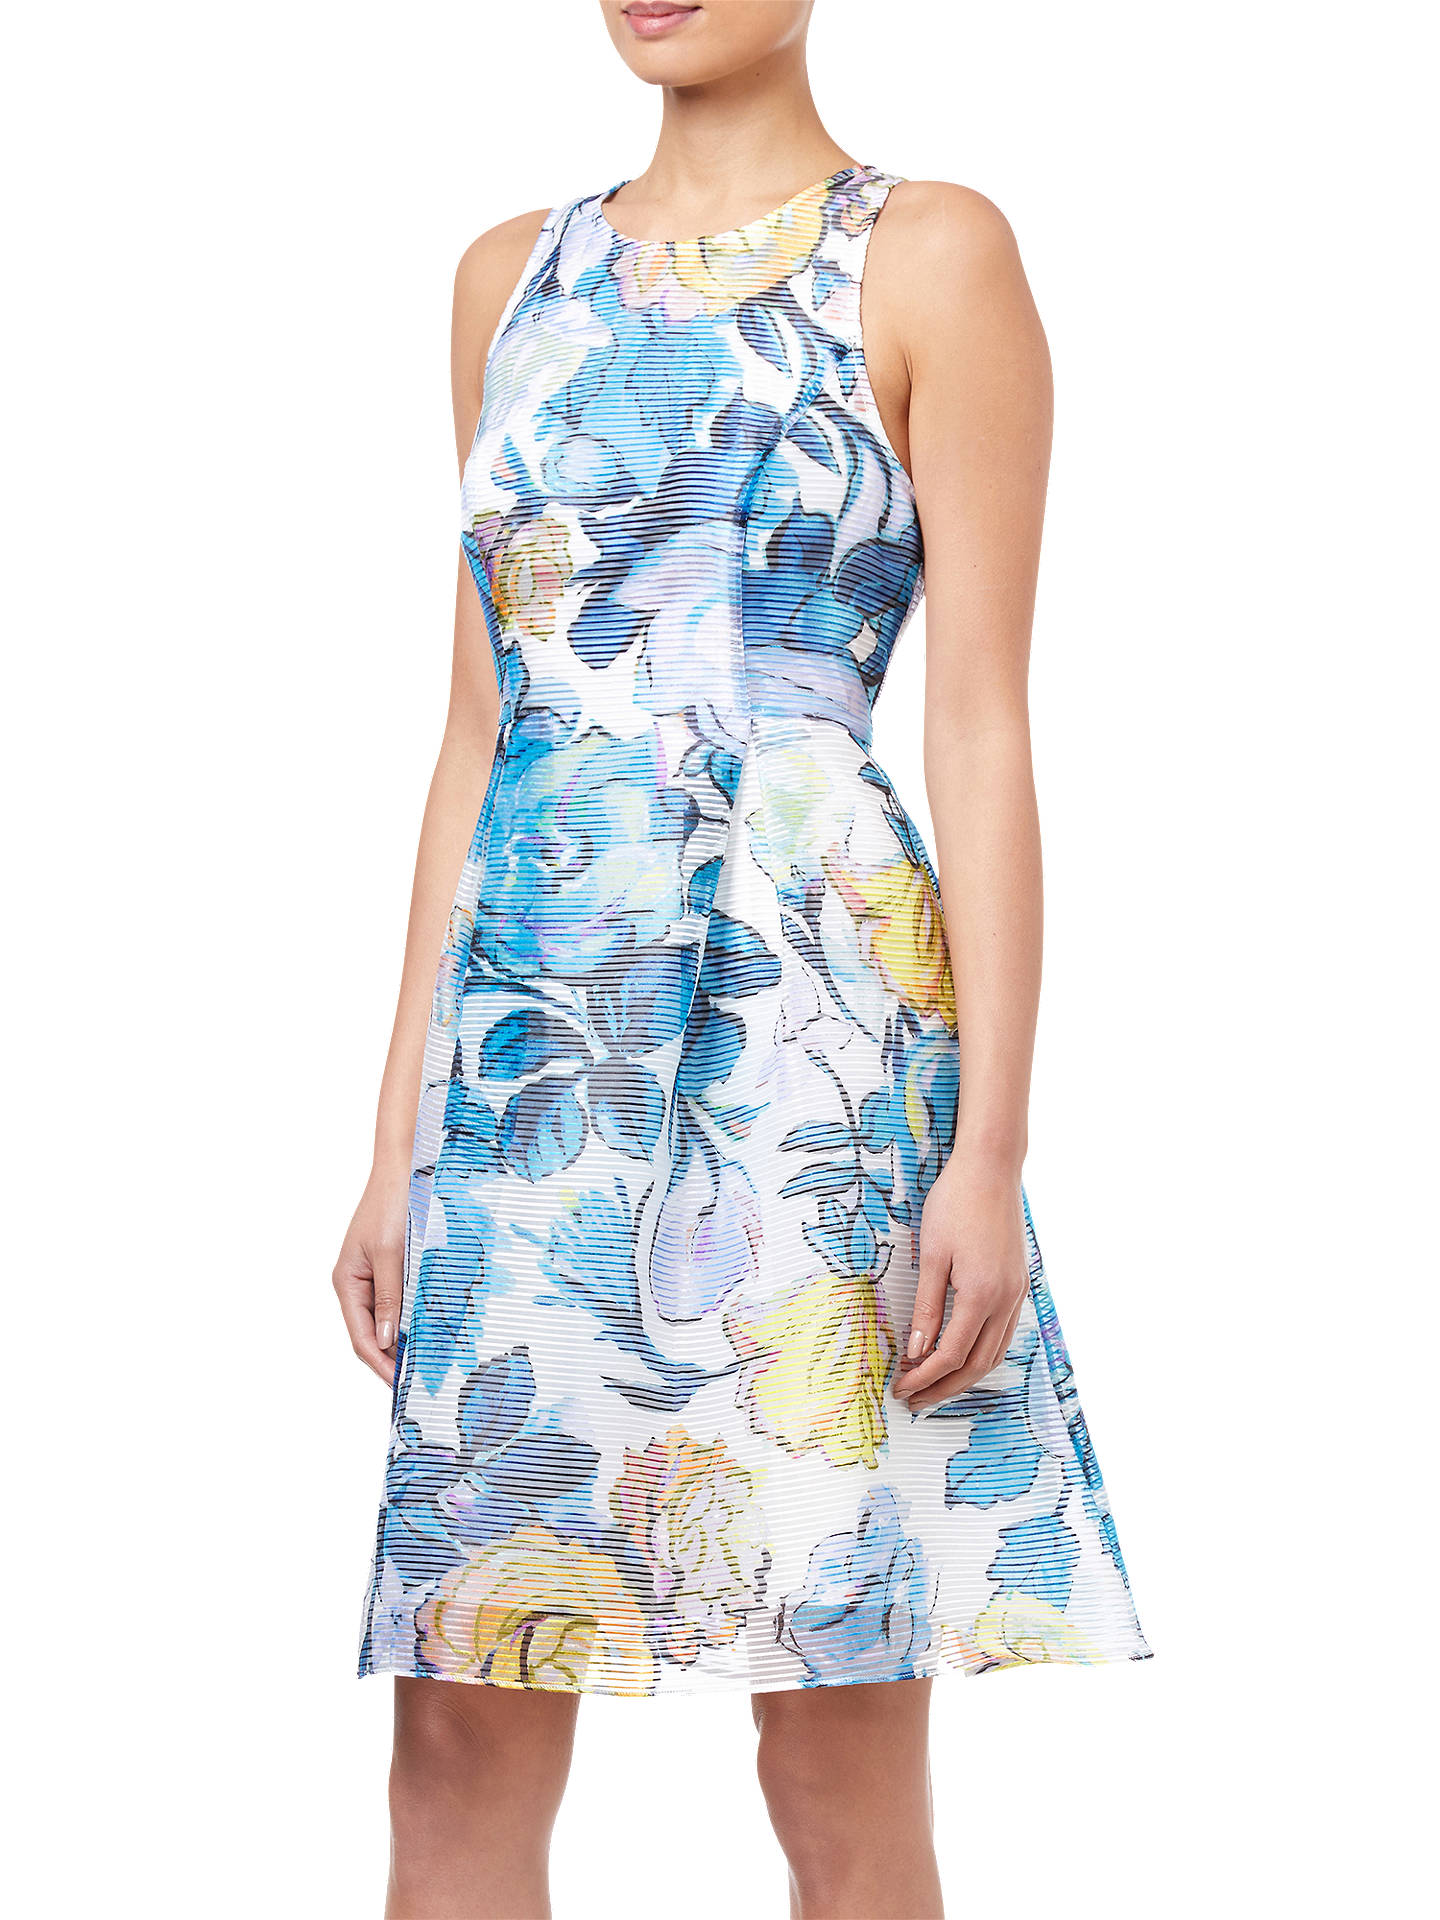 BuyAdrianna Papell Floral Printed Ribbed Organza Dress, Blue/Multi, 10 Online at johnlewis.com